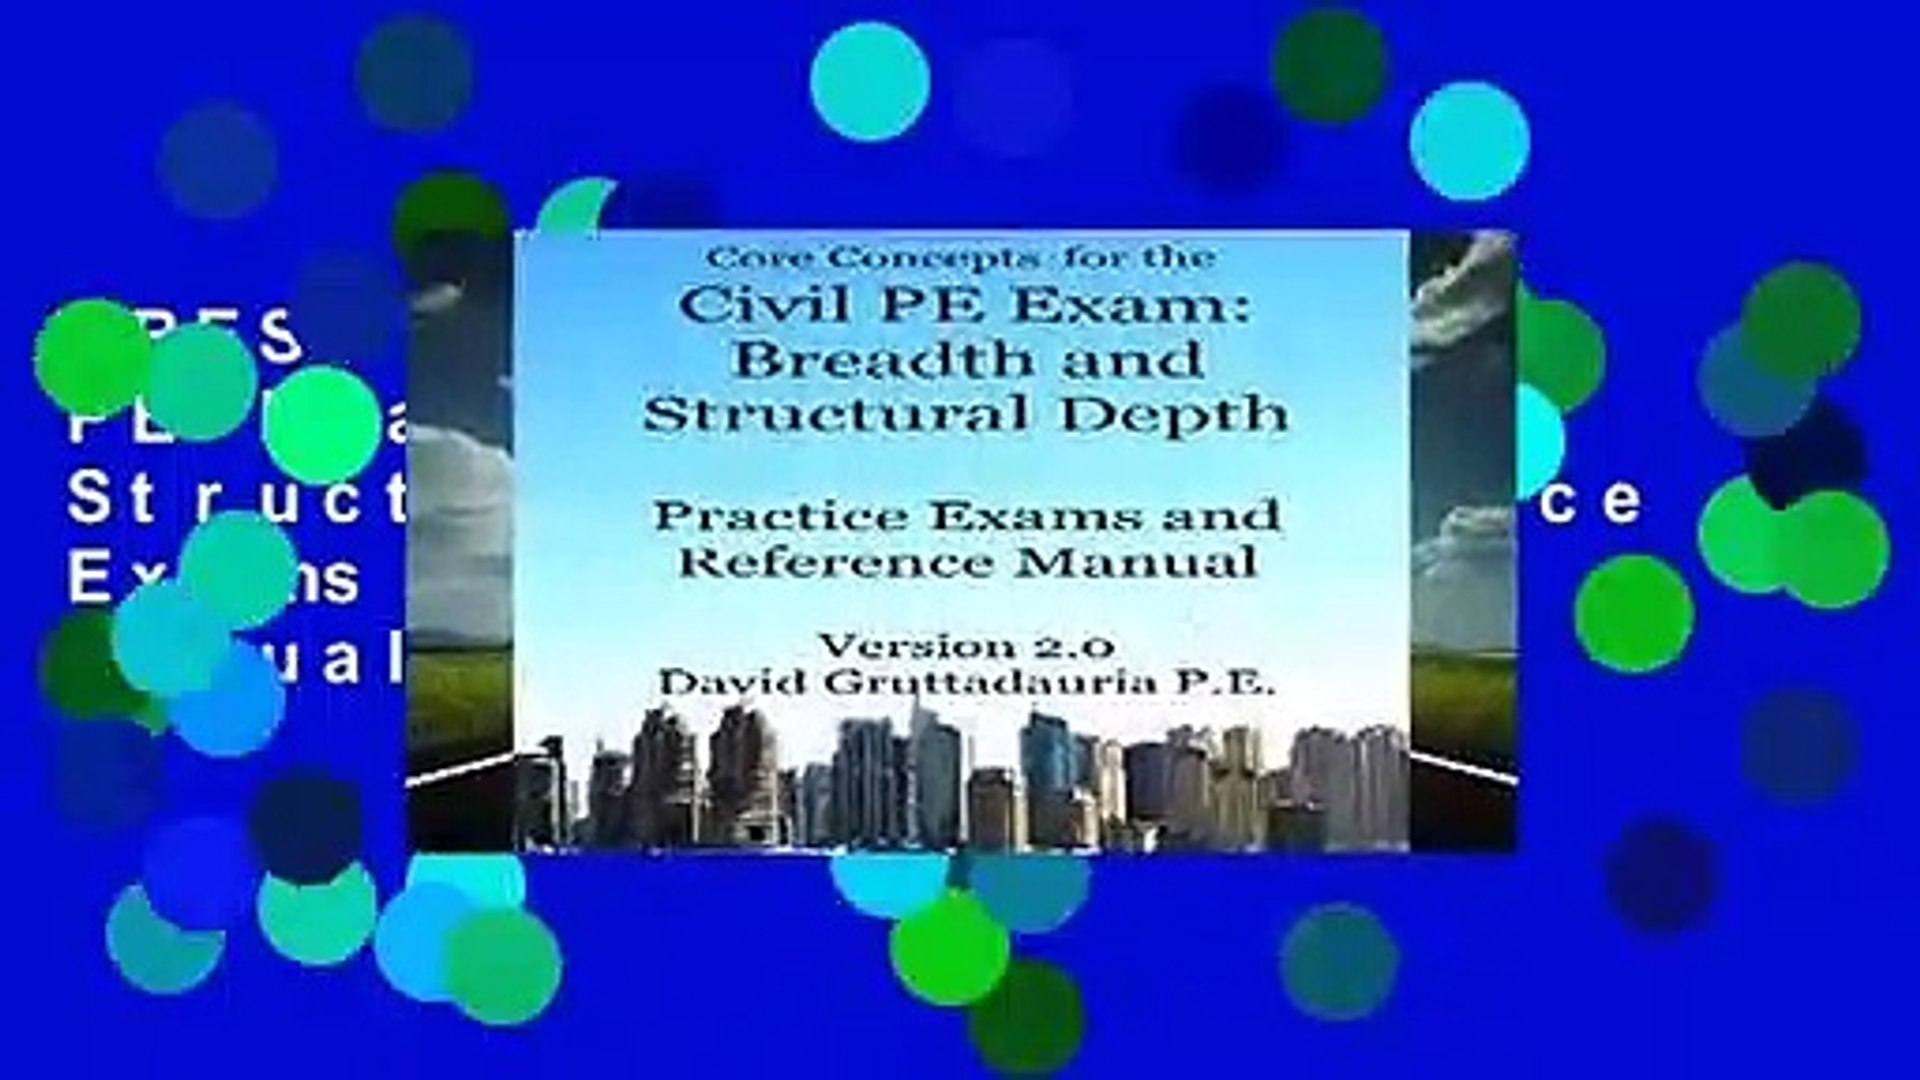 [BEST SELLING] Civil PE Exam Breadth and Structural Depth Practice Exams  and Reference Manual: 80